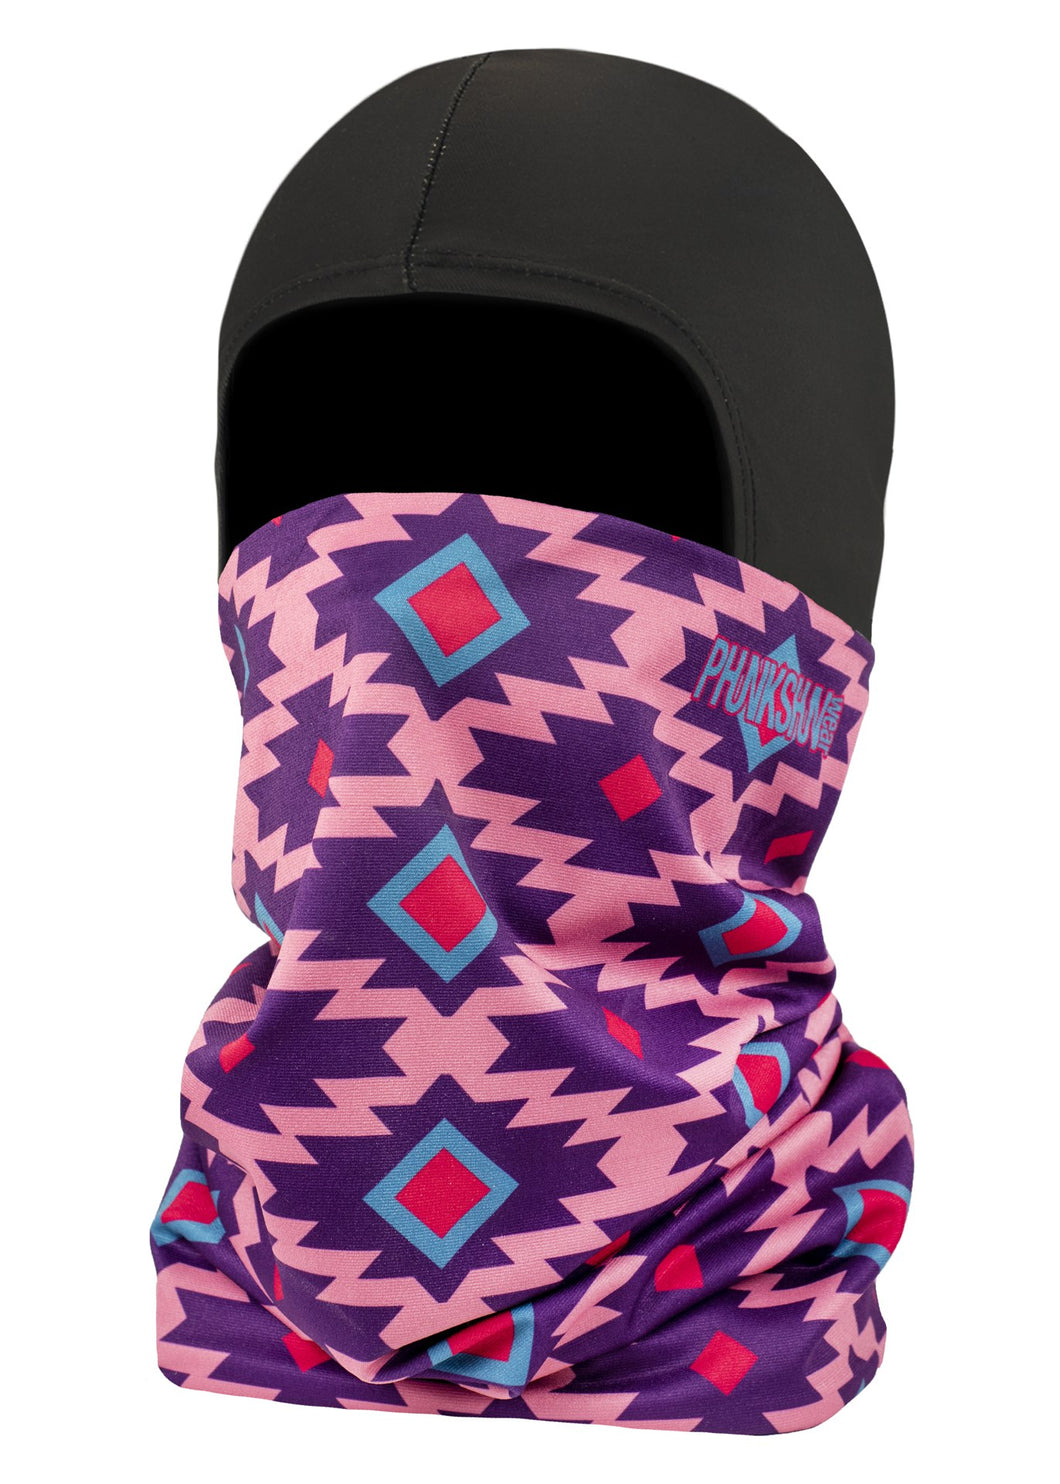 Function Double Layer Ballerclava Geodesic Balaclava Face Mask Indy Aztec Native American Purple Pink Blue Red